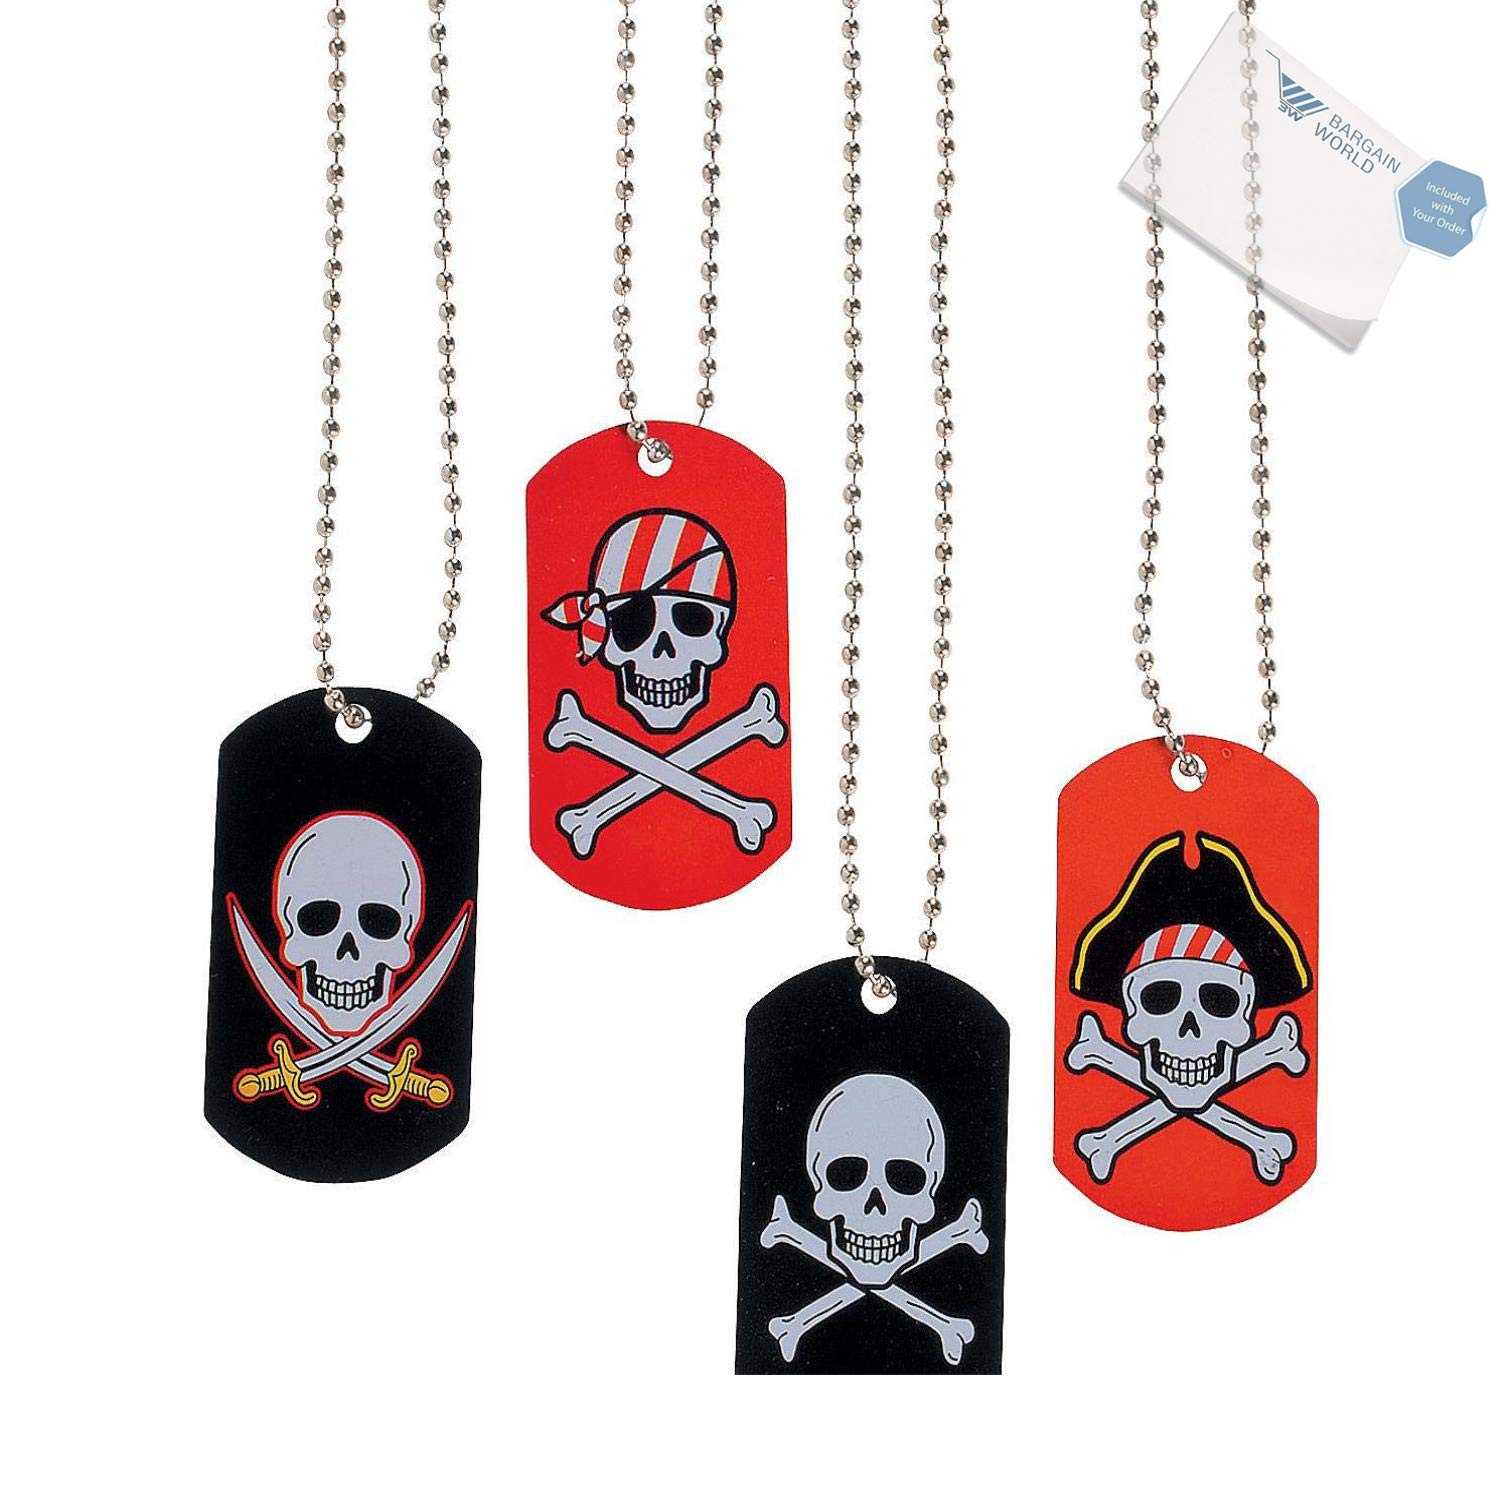 Bargain World Metal Pirate & Crossbones Dog Tag Necklaces (With Sticky Notes)